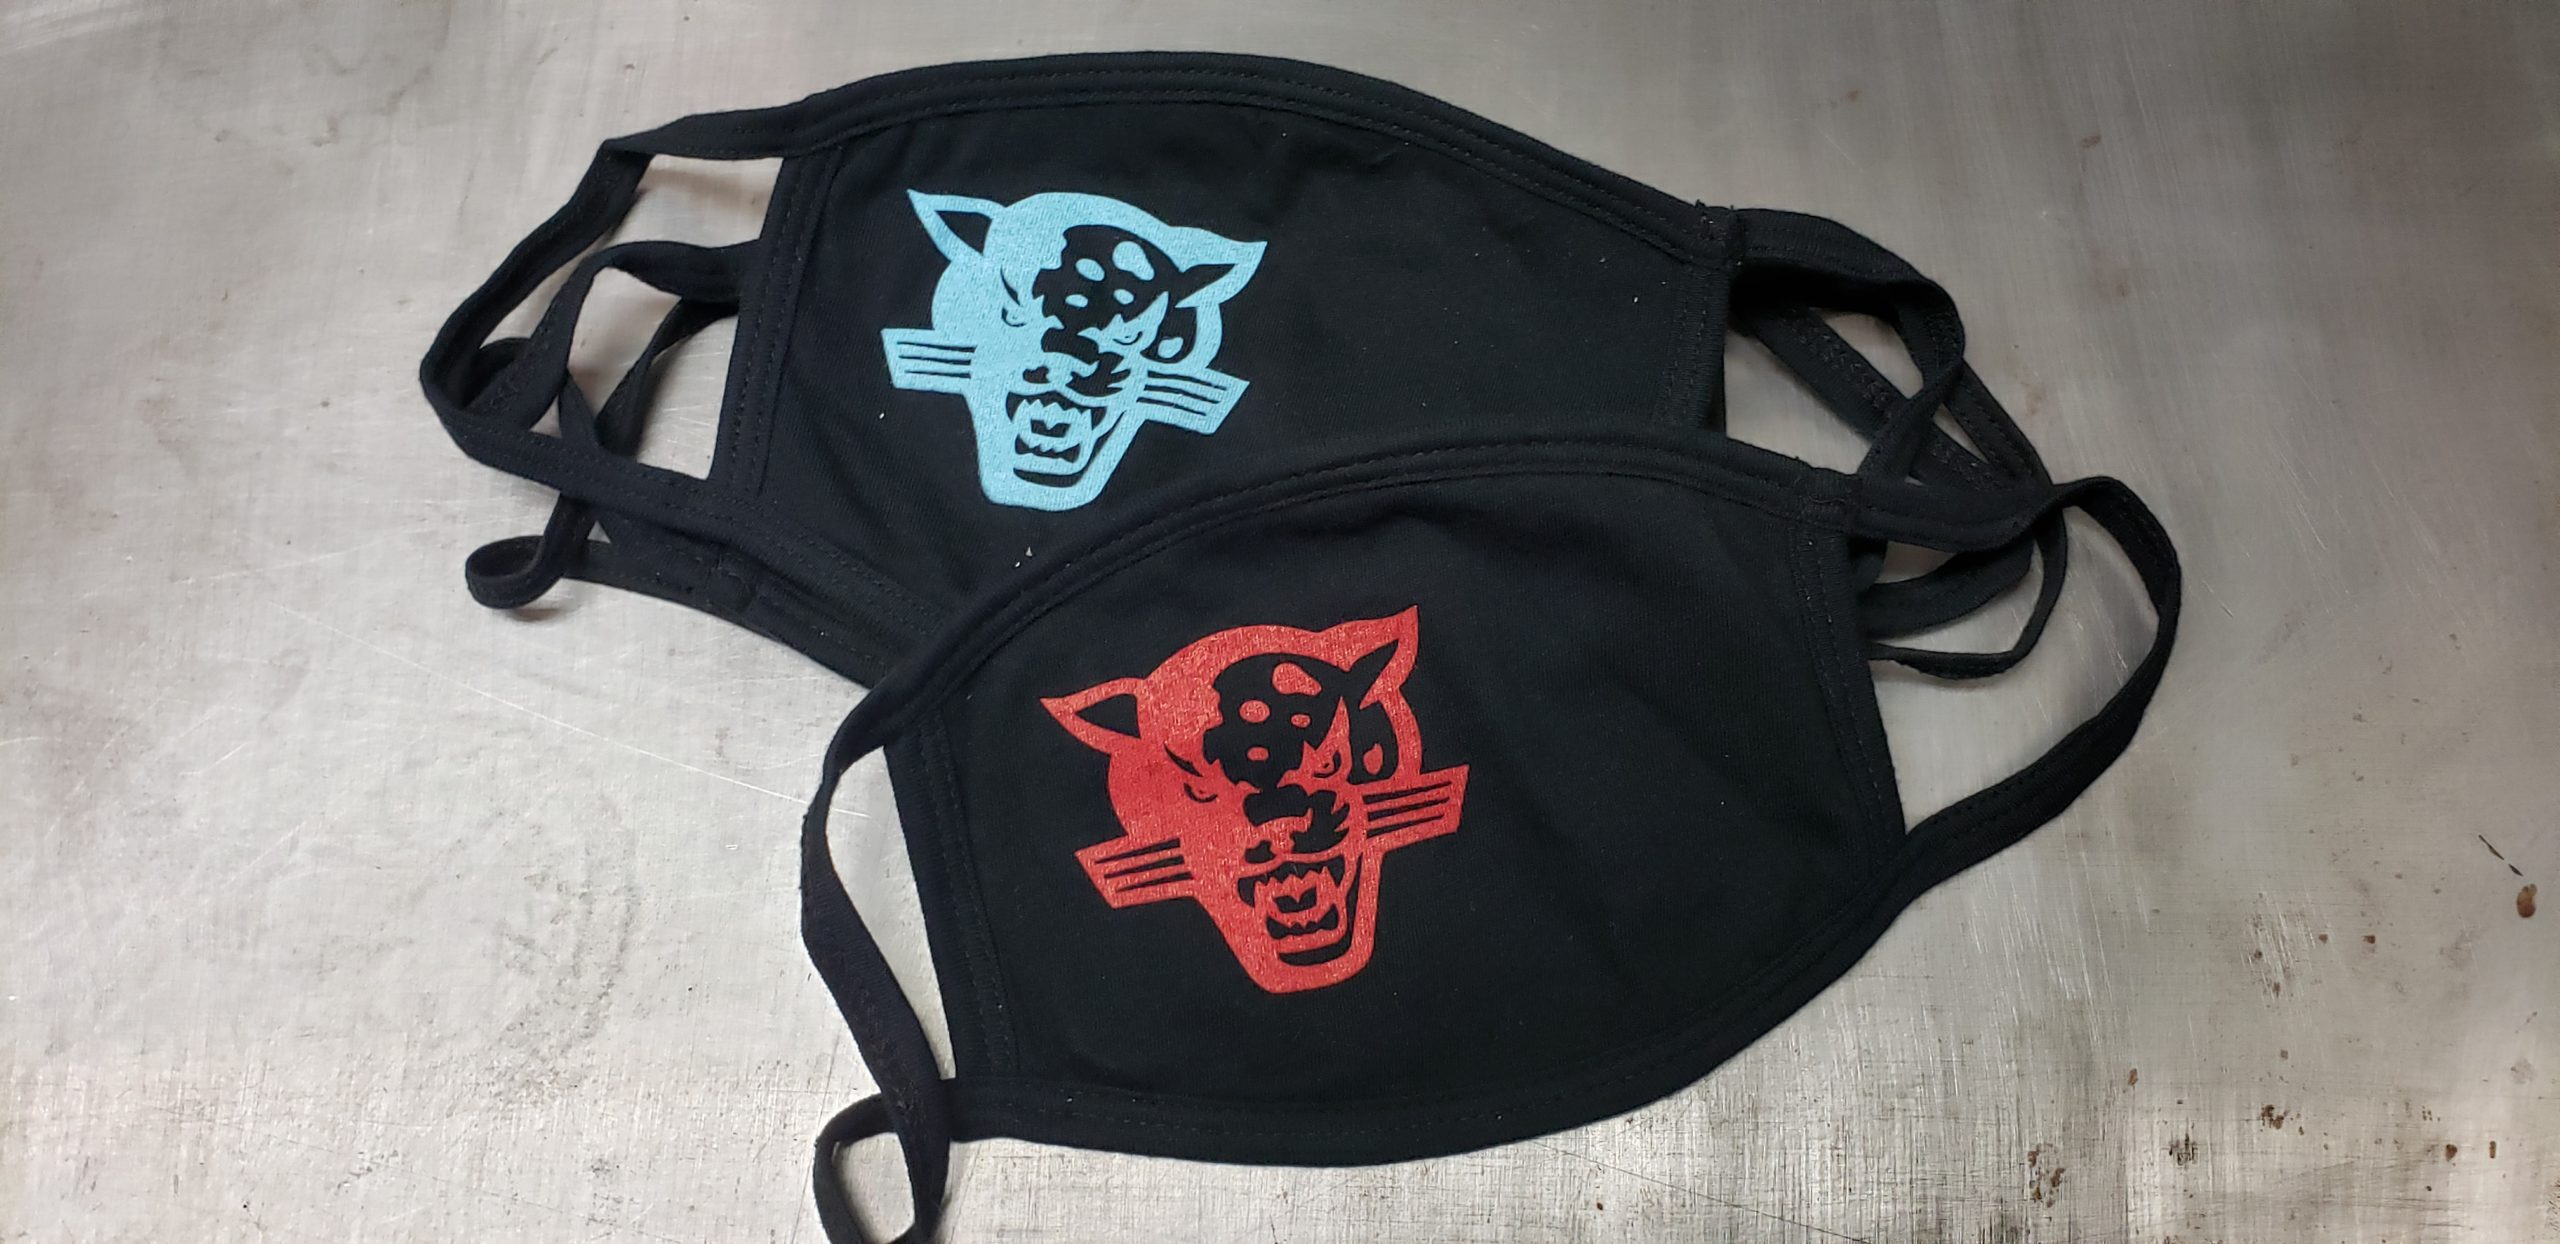 Two black cotton face masks with two different one color color ink union screen designs.